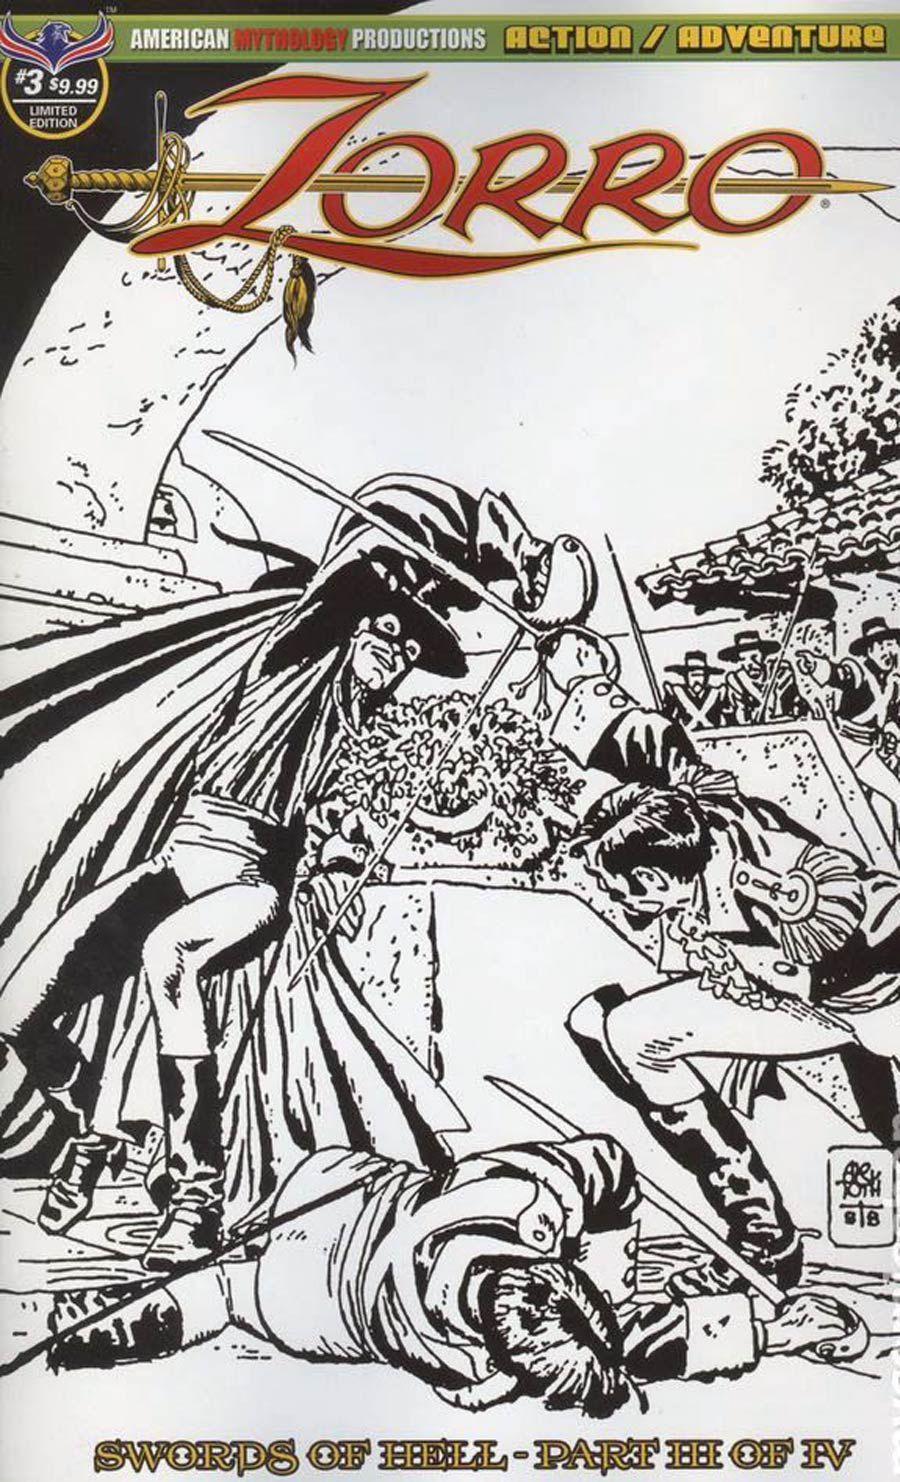 Zorro Swords Of Hell #3 Cover C Limited Edition Alex Toth Visions Of Zorro Cover